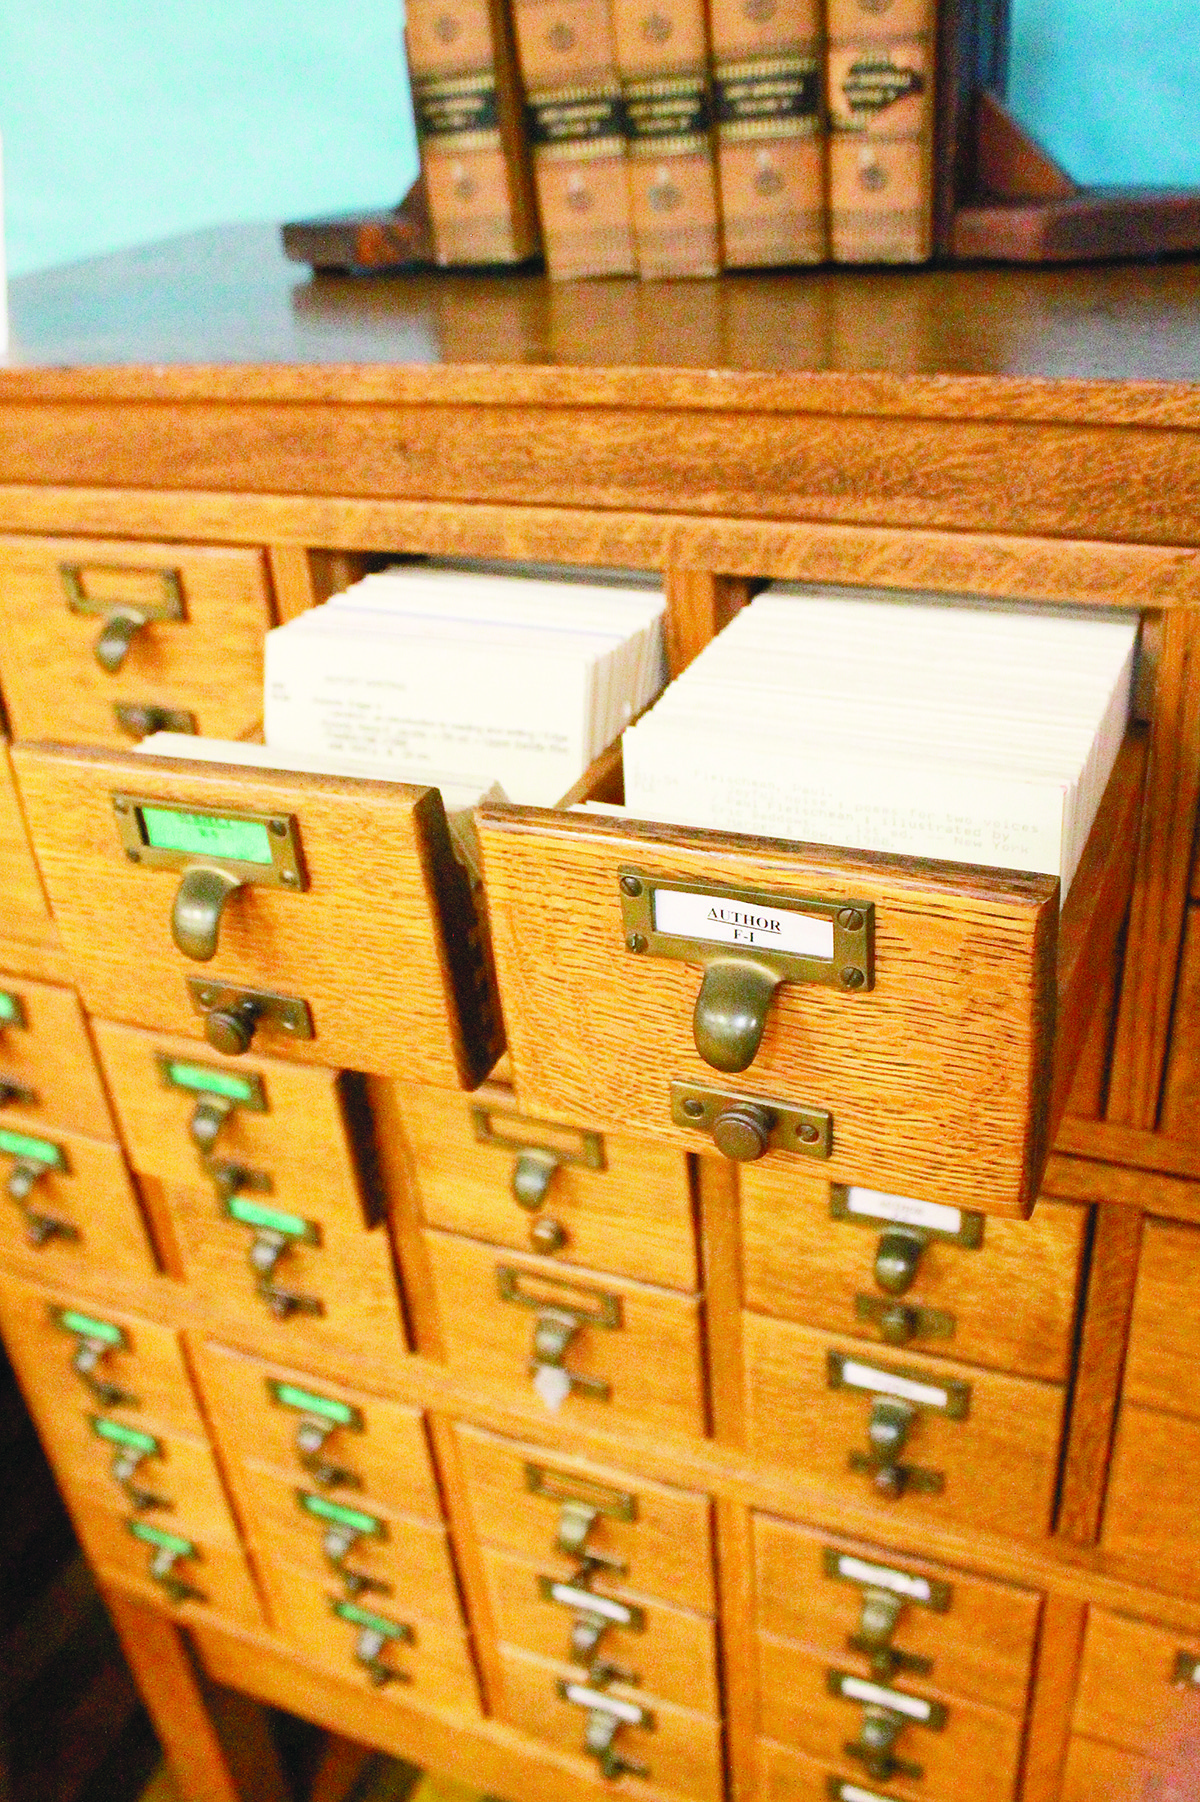 The Jasper Public Library has several historical artifacts on display through the end of the month. This card catalog was used in the Walker County Library and Sumiton Public Library. It is the only catalog that remains intact since the library system moved to a digital catalog in 2009.